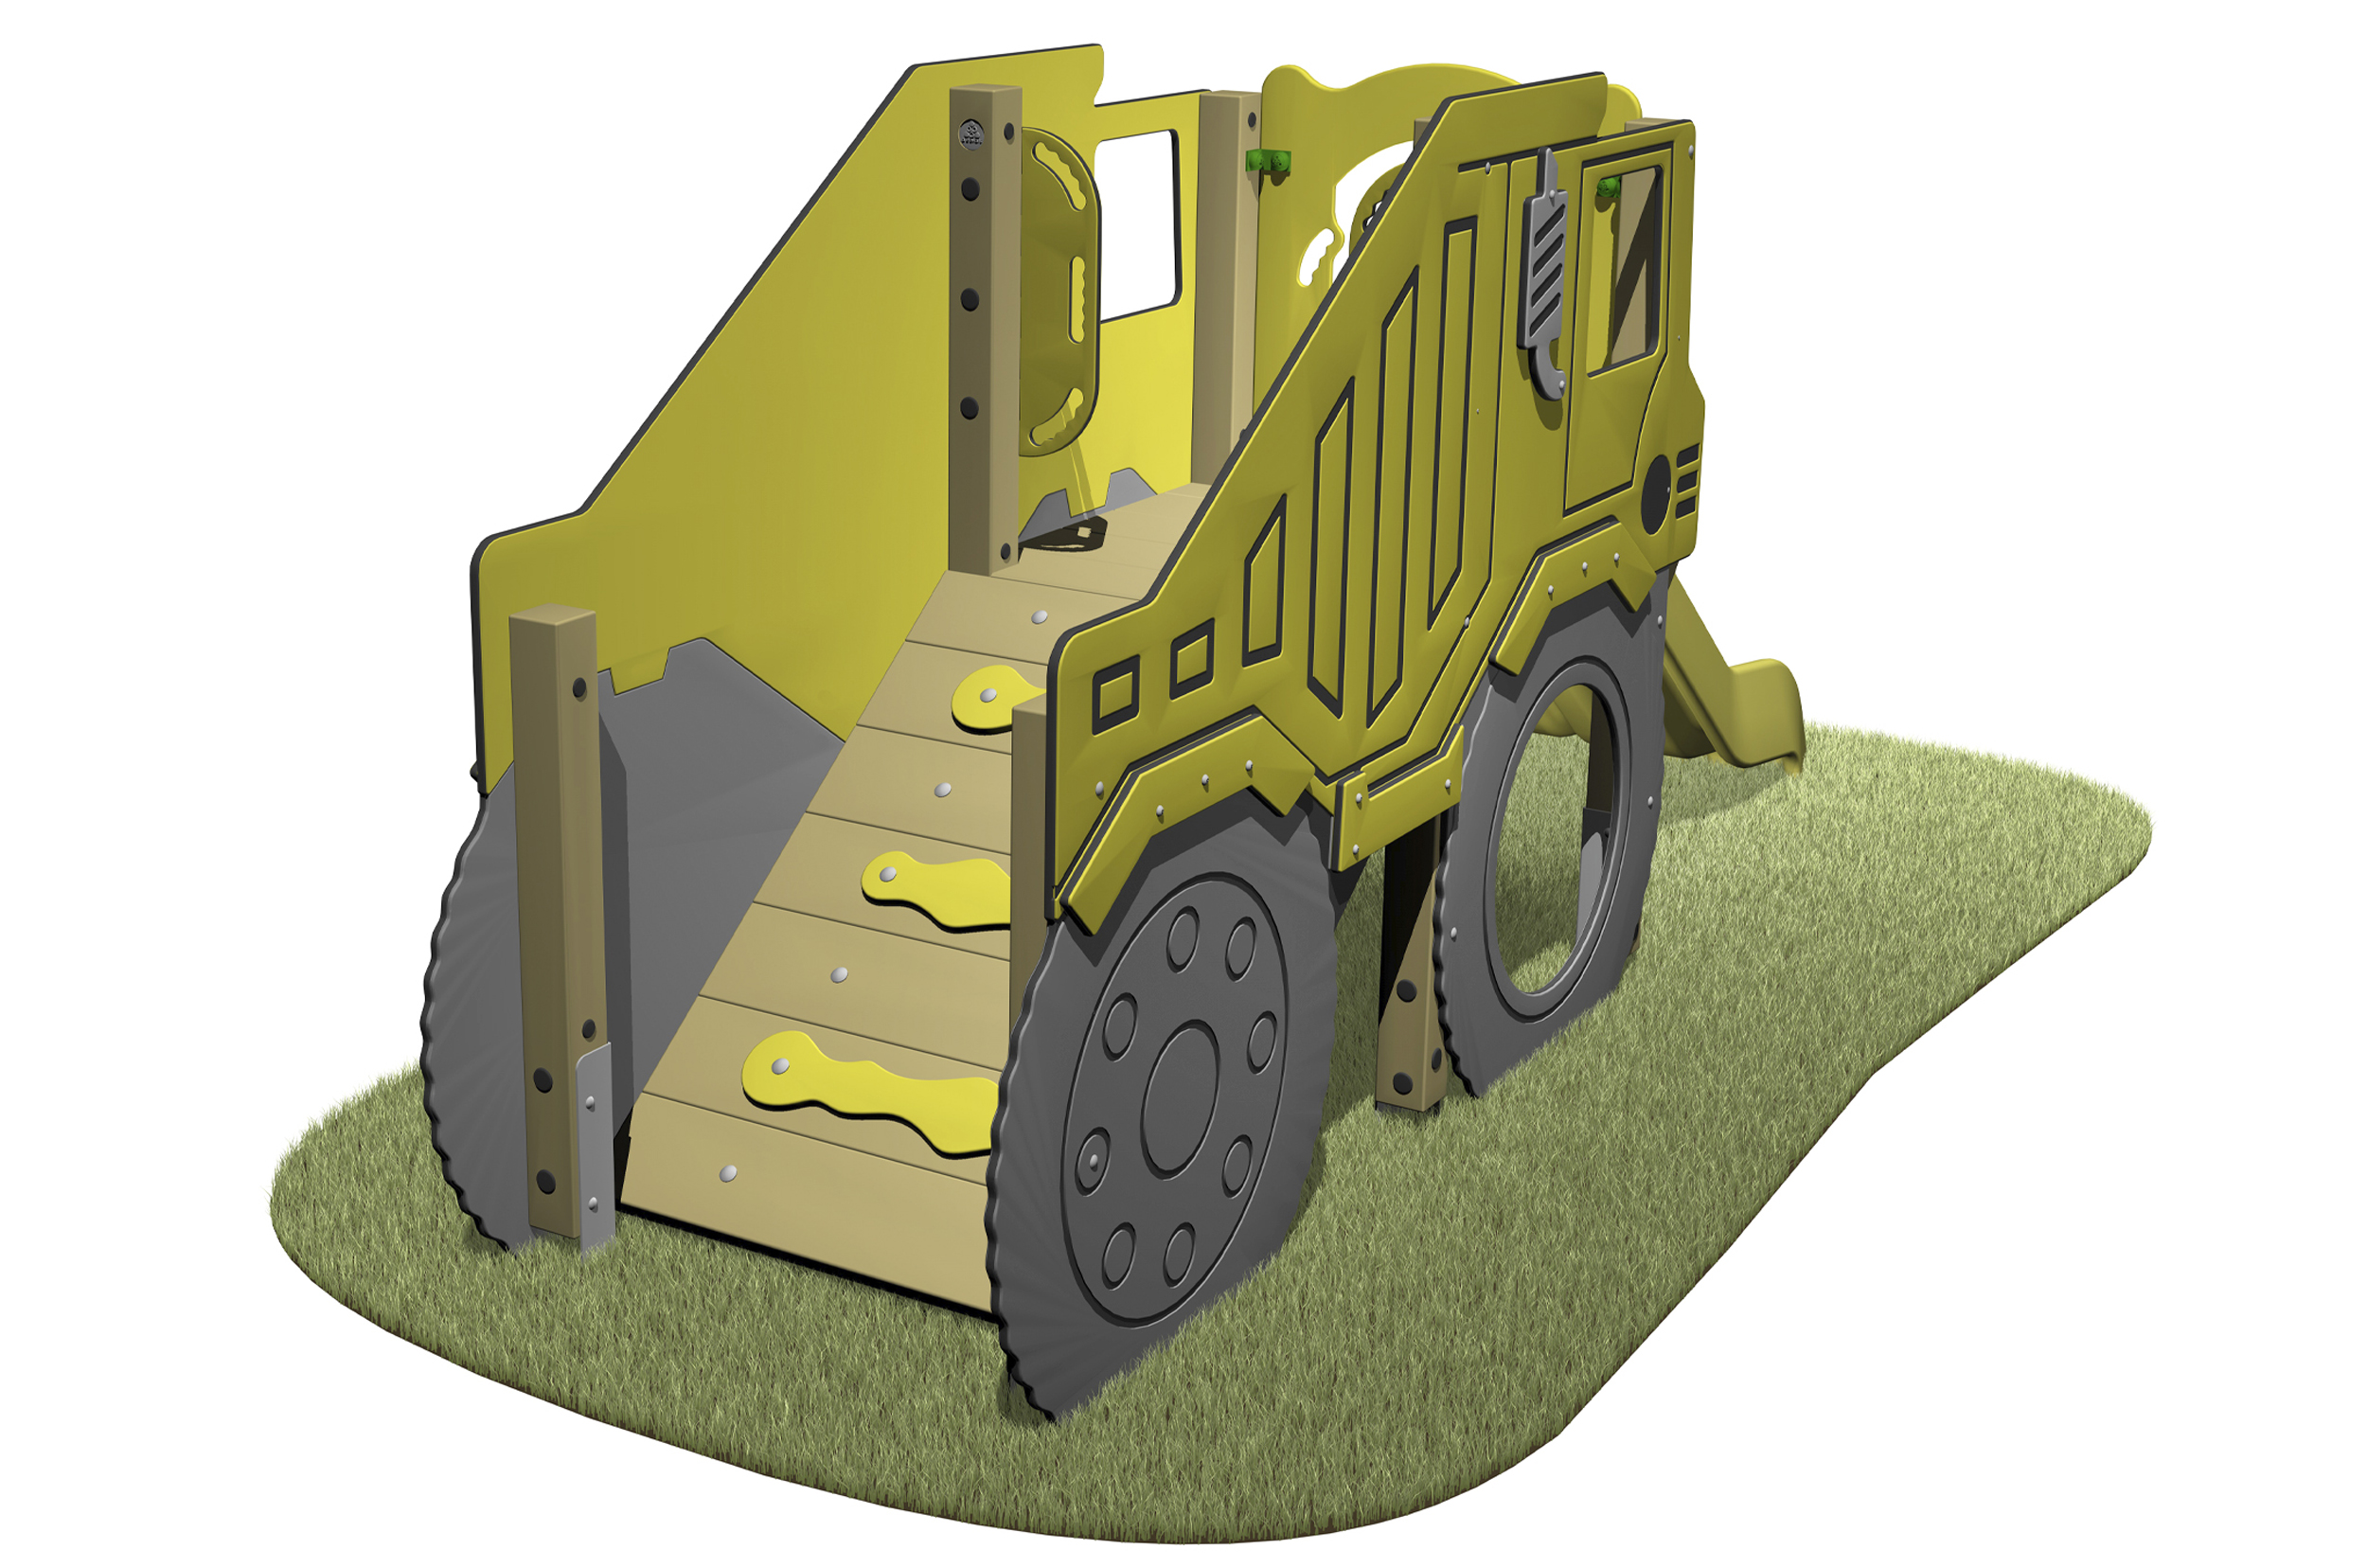 Dump Truck Slide with dump truck themed sides access ramp and yellow slide